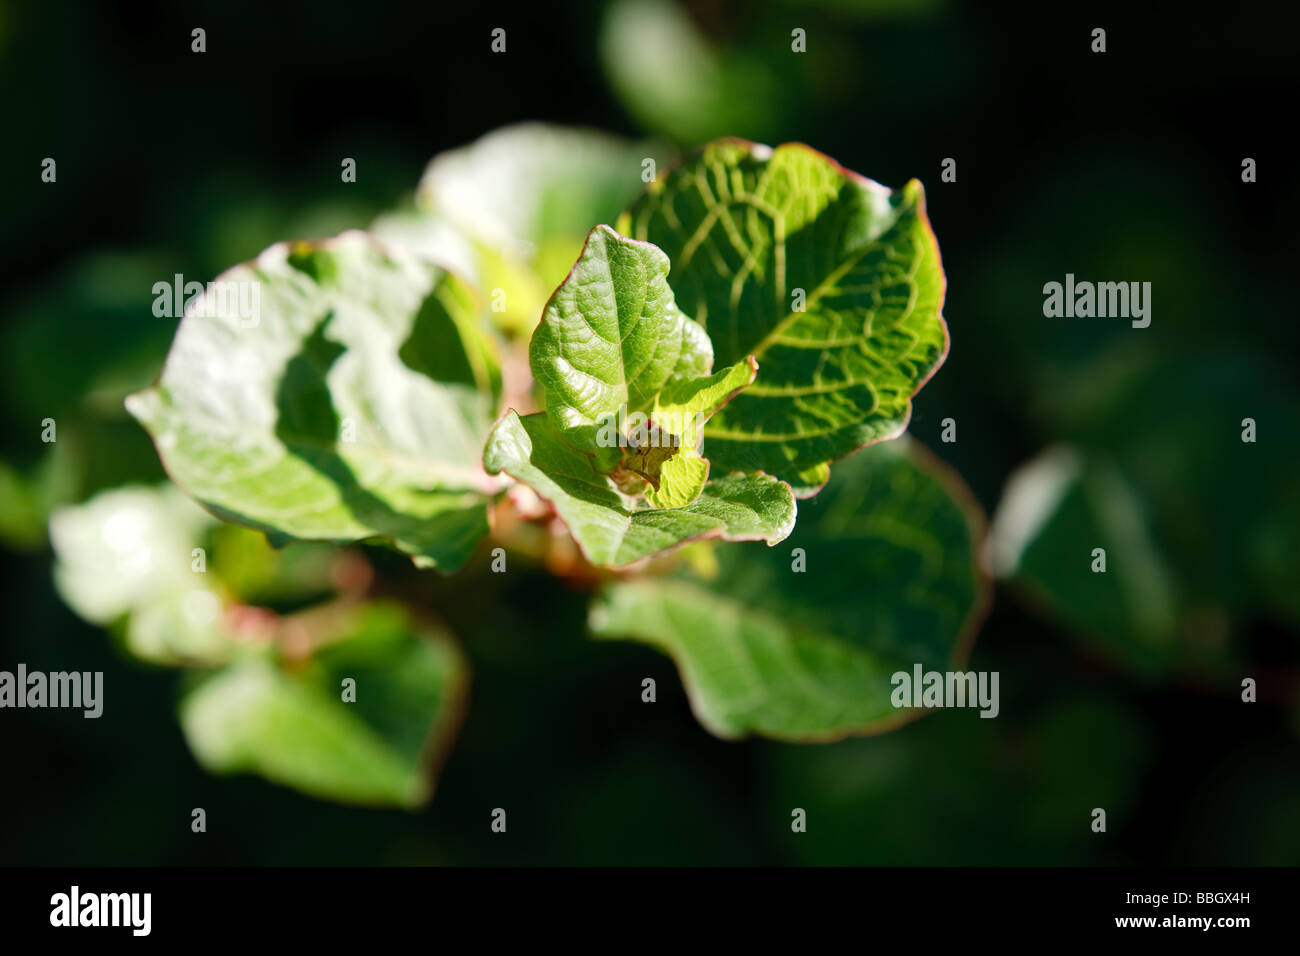 Japanese Knotweed (Fallopia japonica) - Stock Image